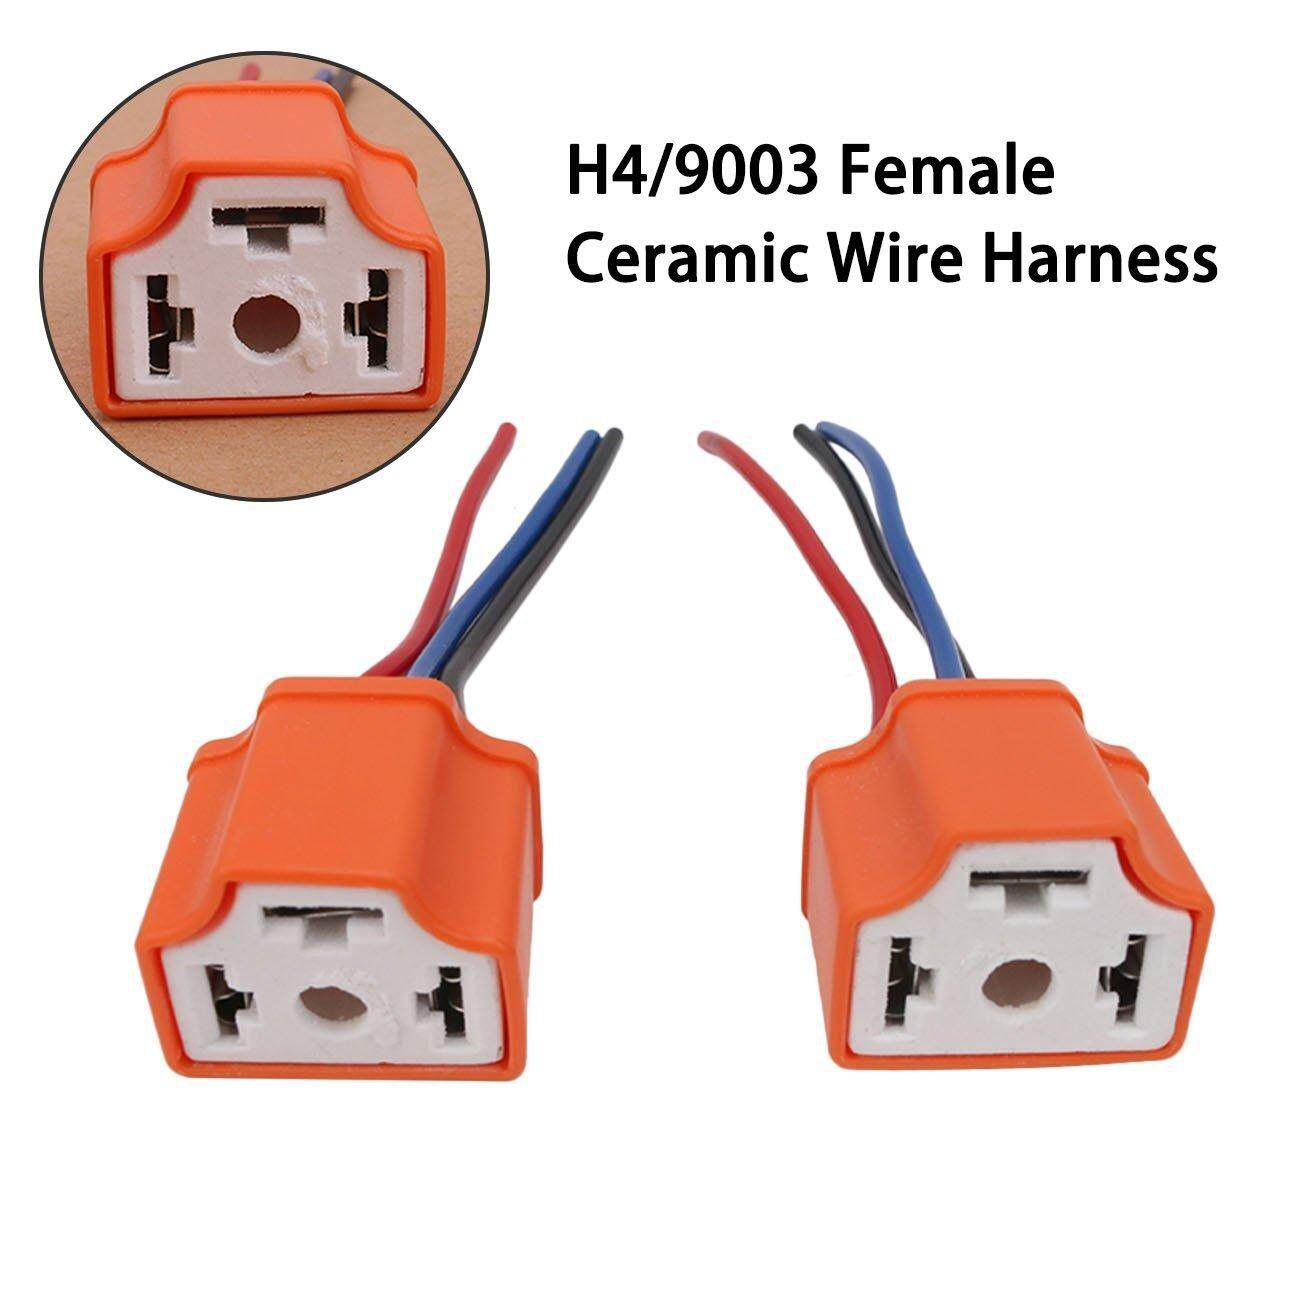 Features Olizard 2pcs H11 H8 Female Head Extension Connector Plug Socket Wiring Dsstyles Ceramic Headlight Wire Adapter For 12v Light Lamp Bulb